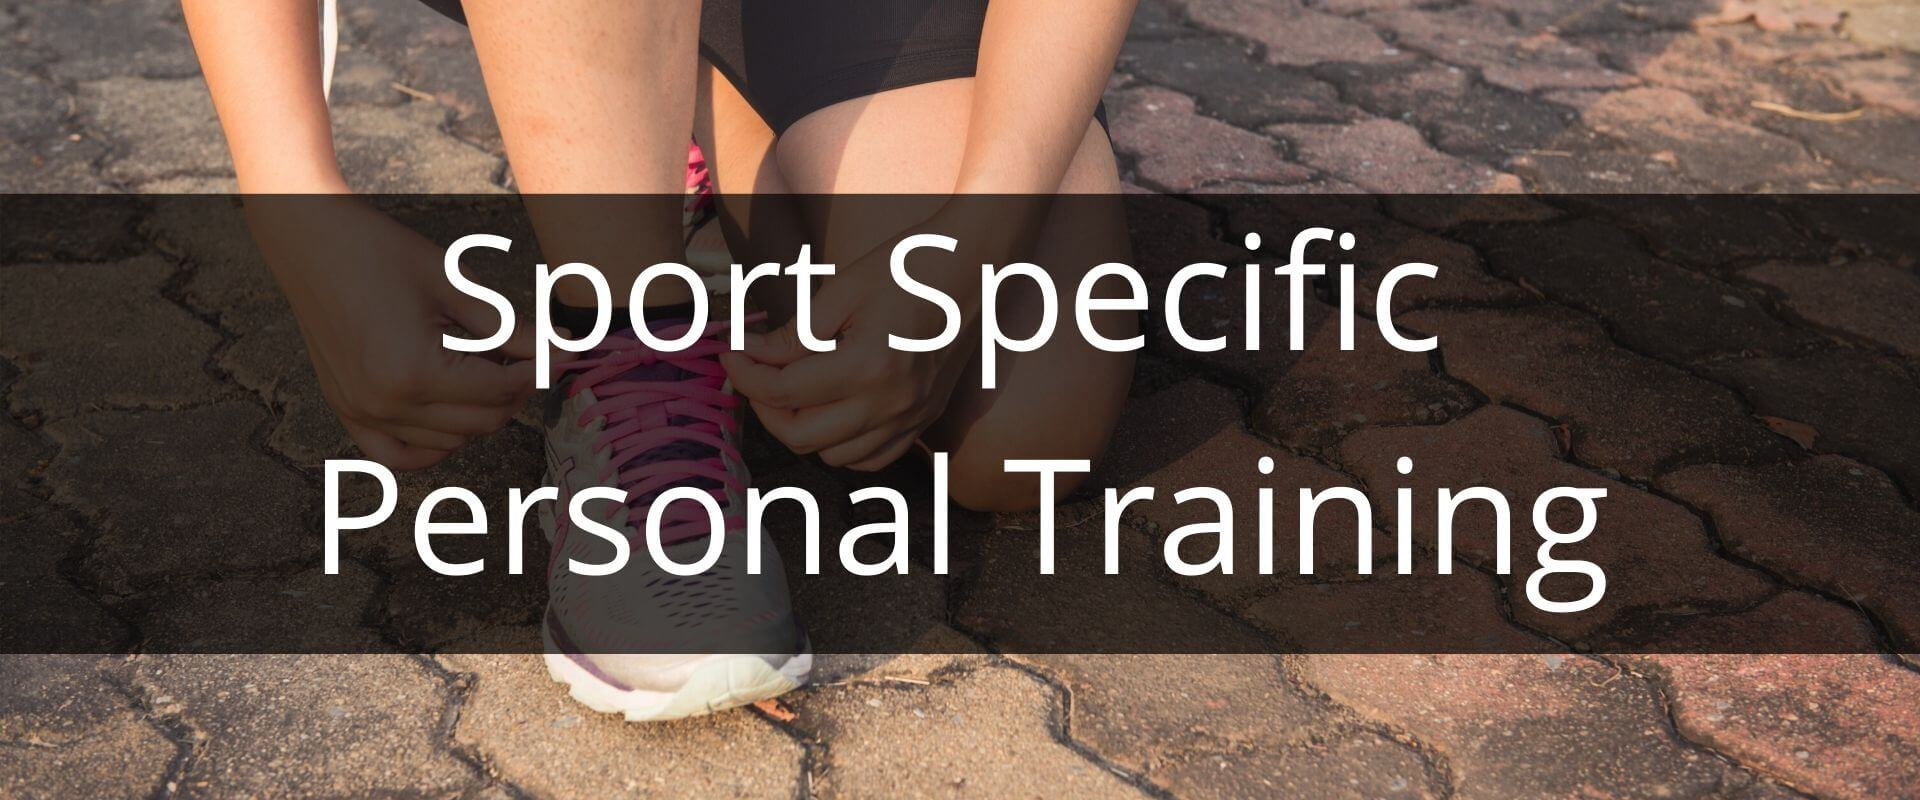 Sport Specific Personal Training Thumbnail